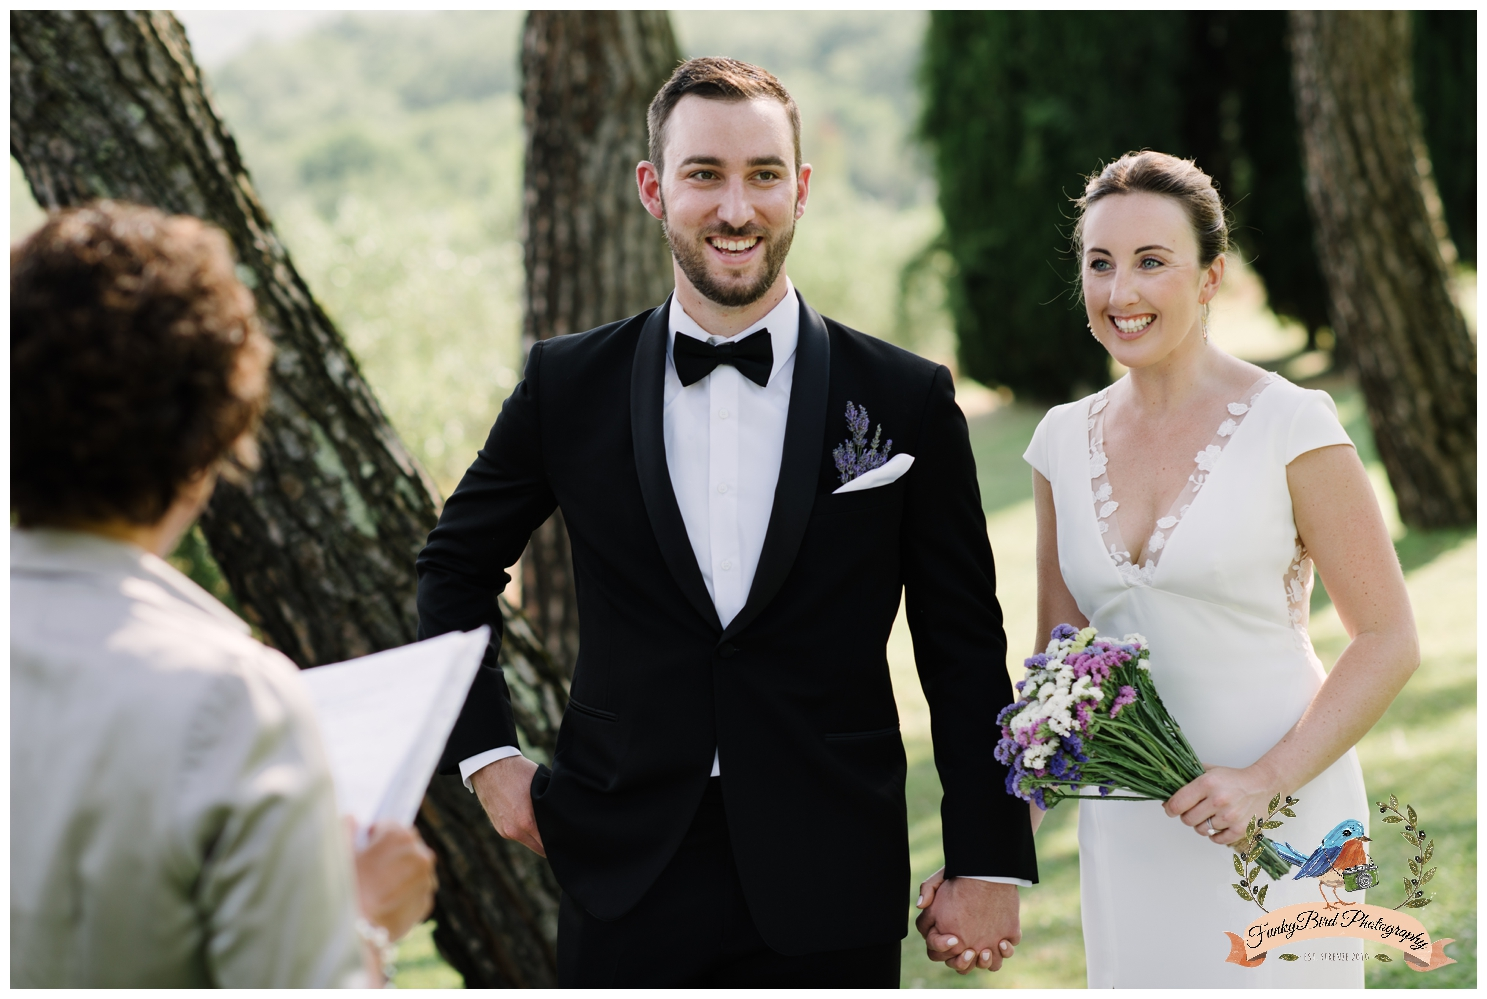 Wedding_Photographer_Tuscany_Italy_0021.jpg